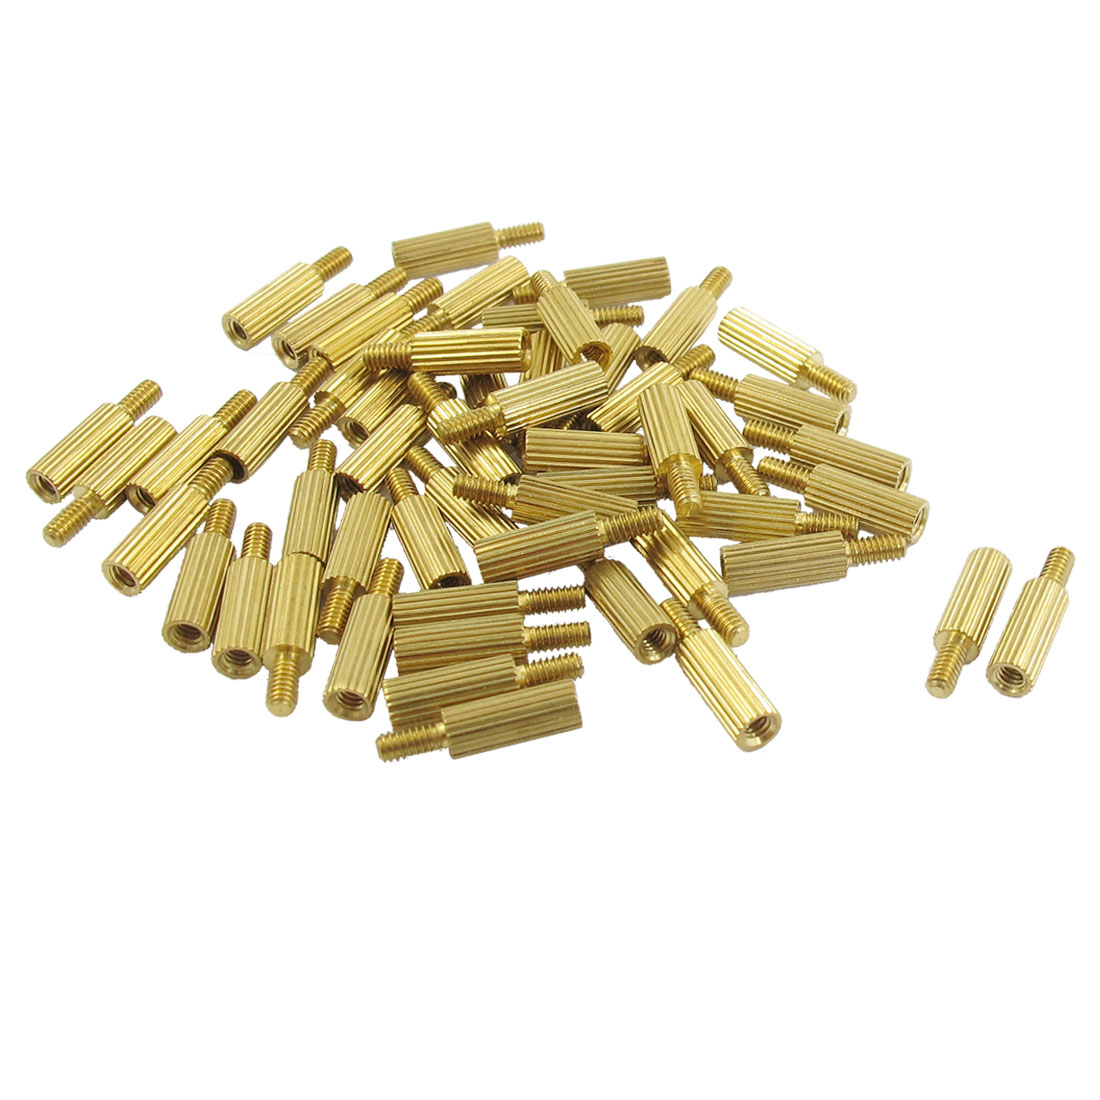 50 Pcs Male to Female Thread Brass Pillars Standoff Spacer M2x8mmx11mm